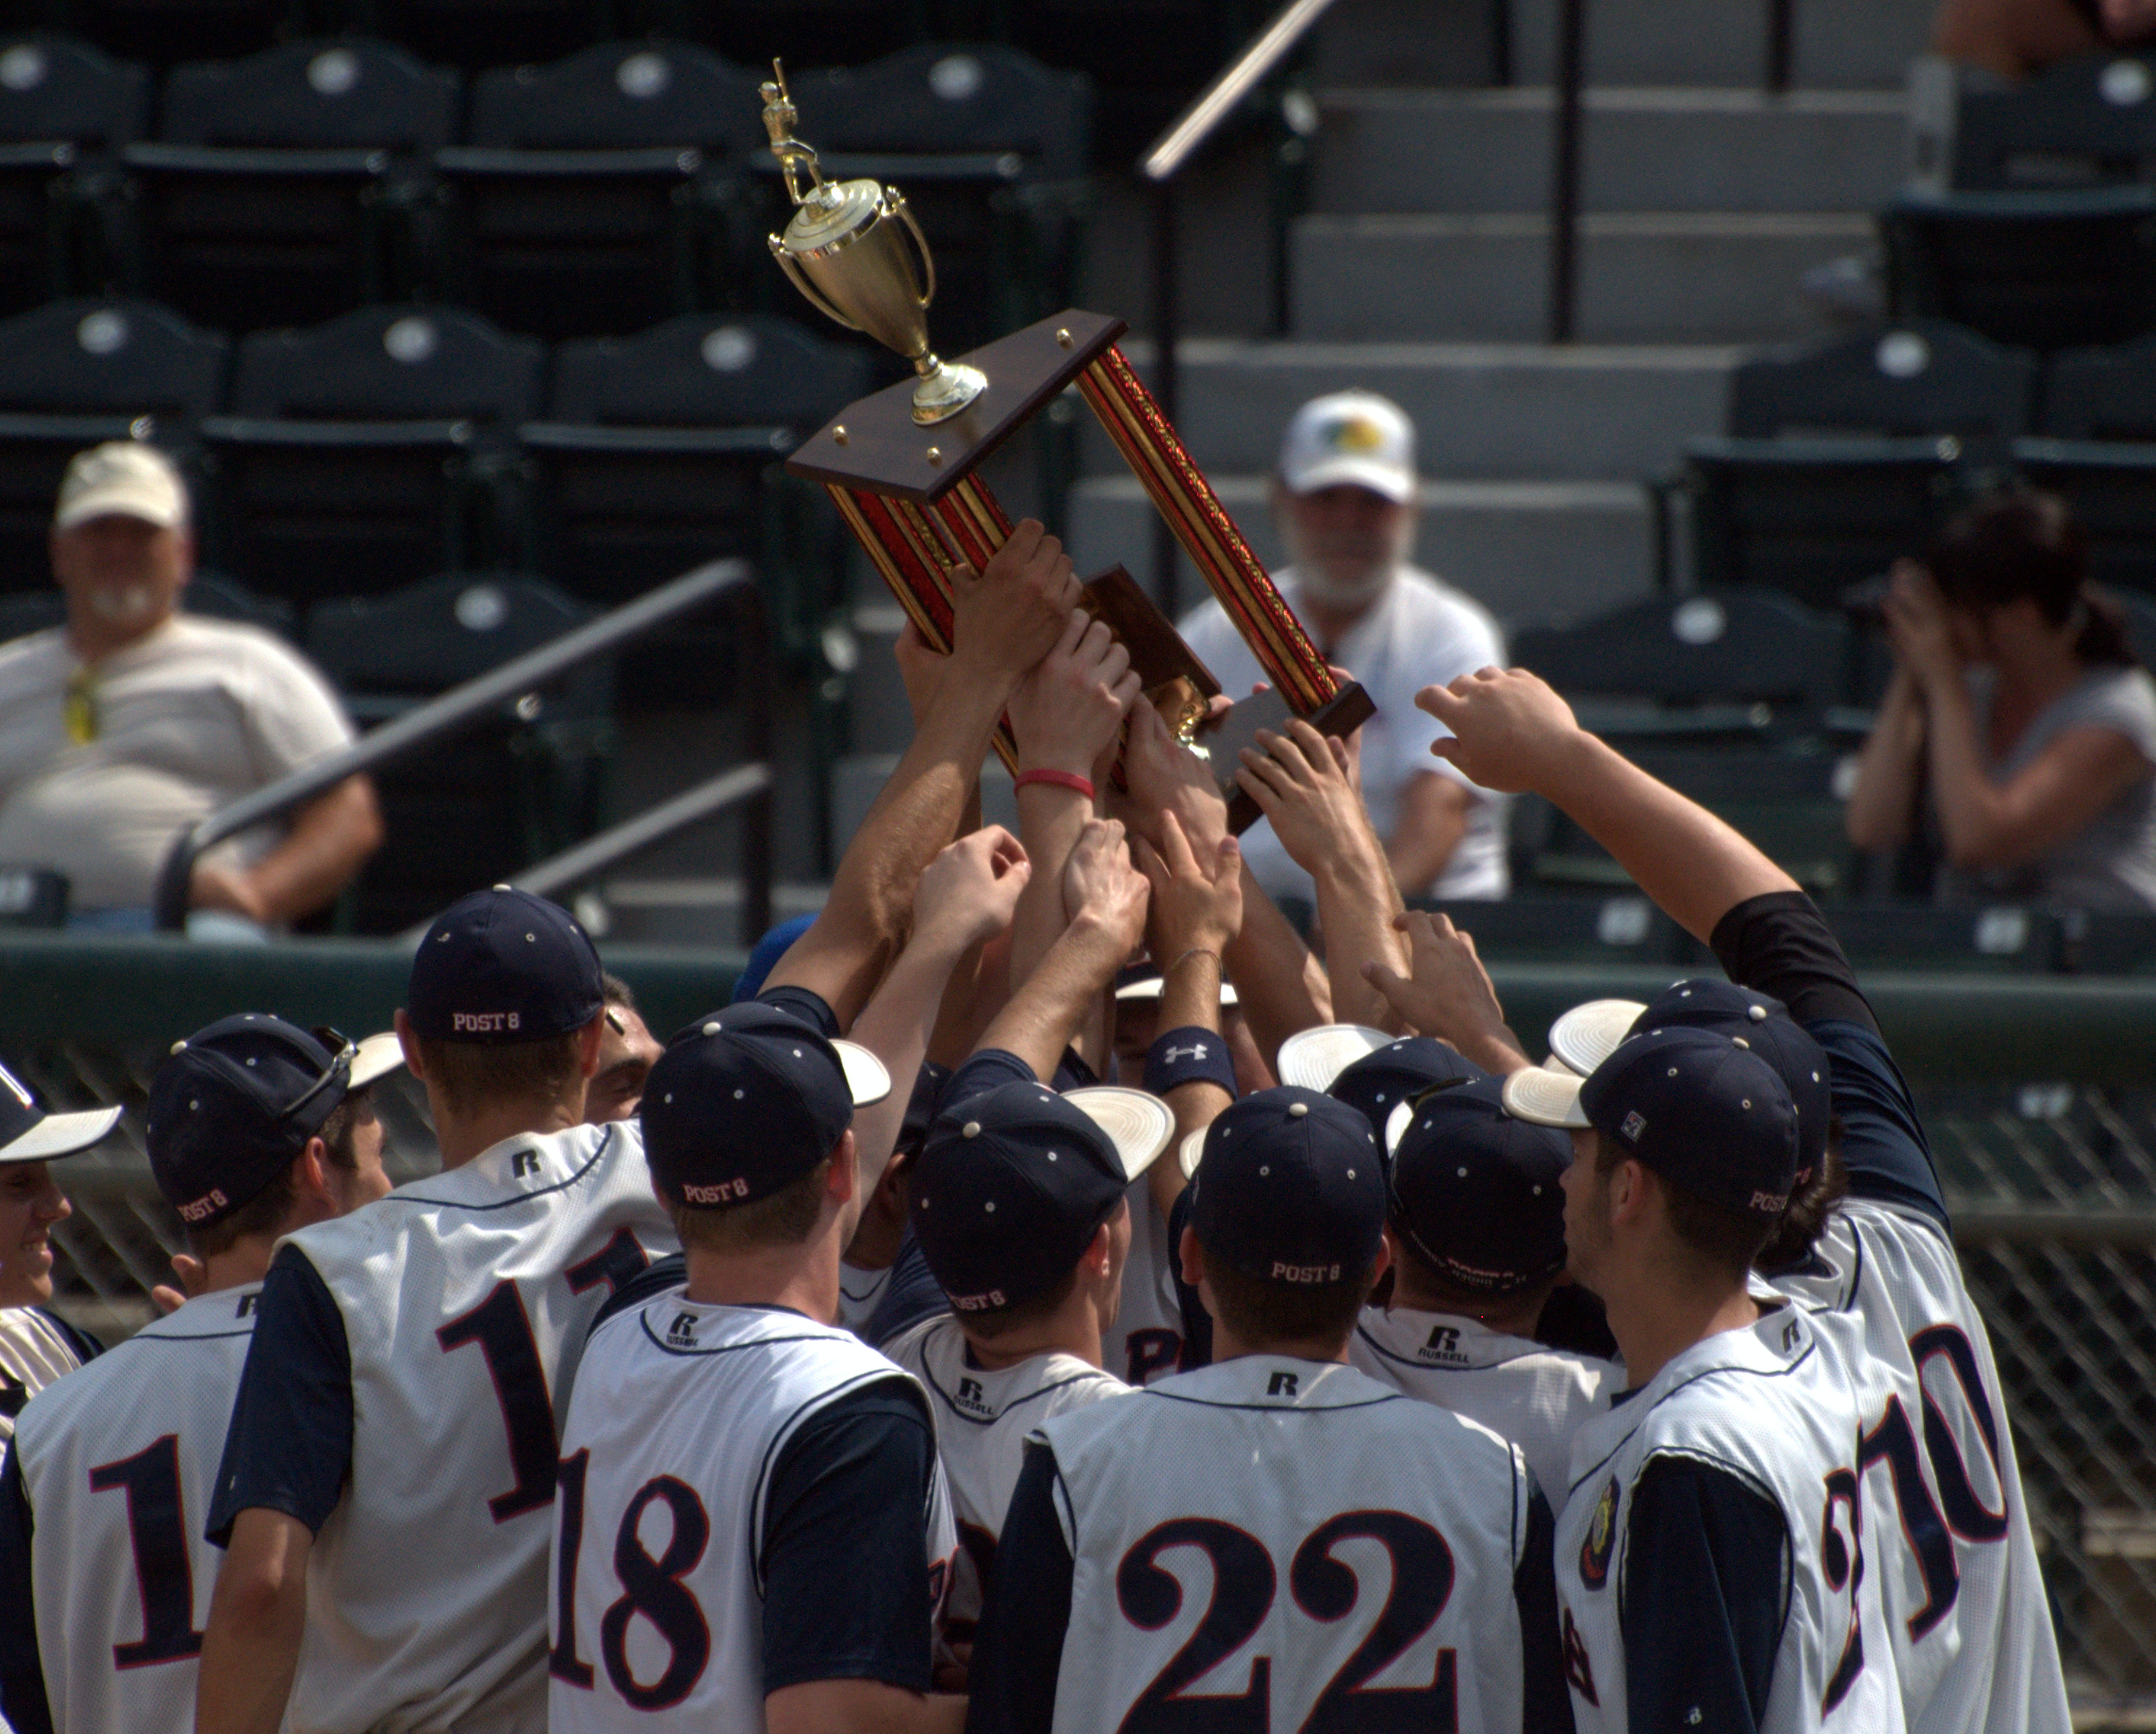 Dover players hold up the American Legion Senior Championship trophy after beating Derry on Tuesday.